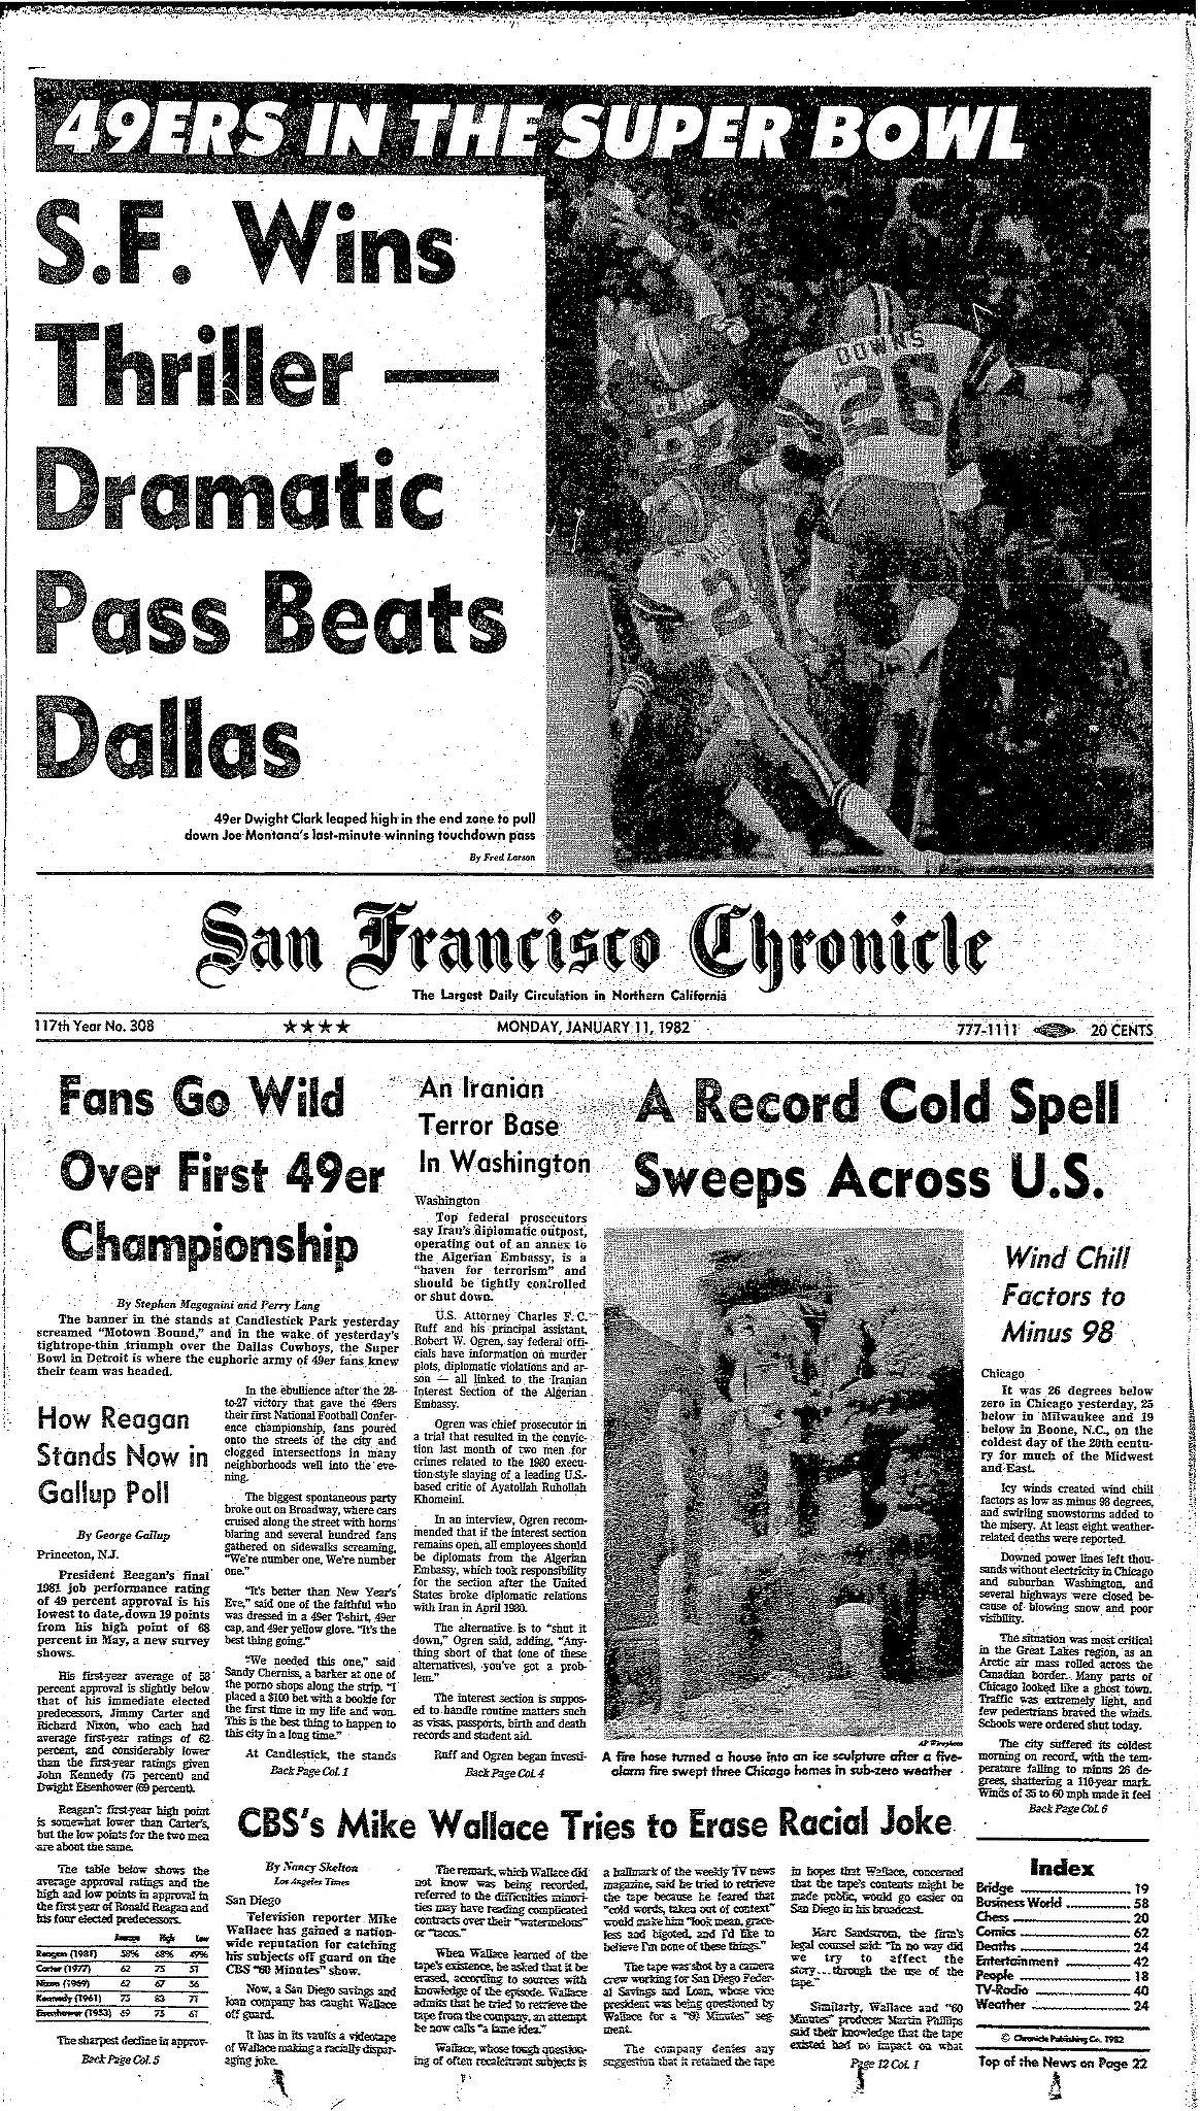 Historic Chronicle Front Pages January 11, 1981 The most famous play in San Francisco 49ers history, The Catch, propelled them into their first Super Bowl Chron365, Chroncover